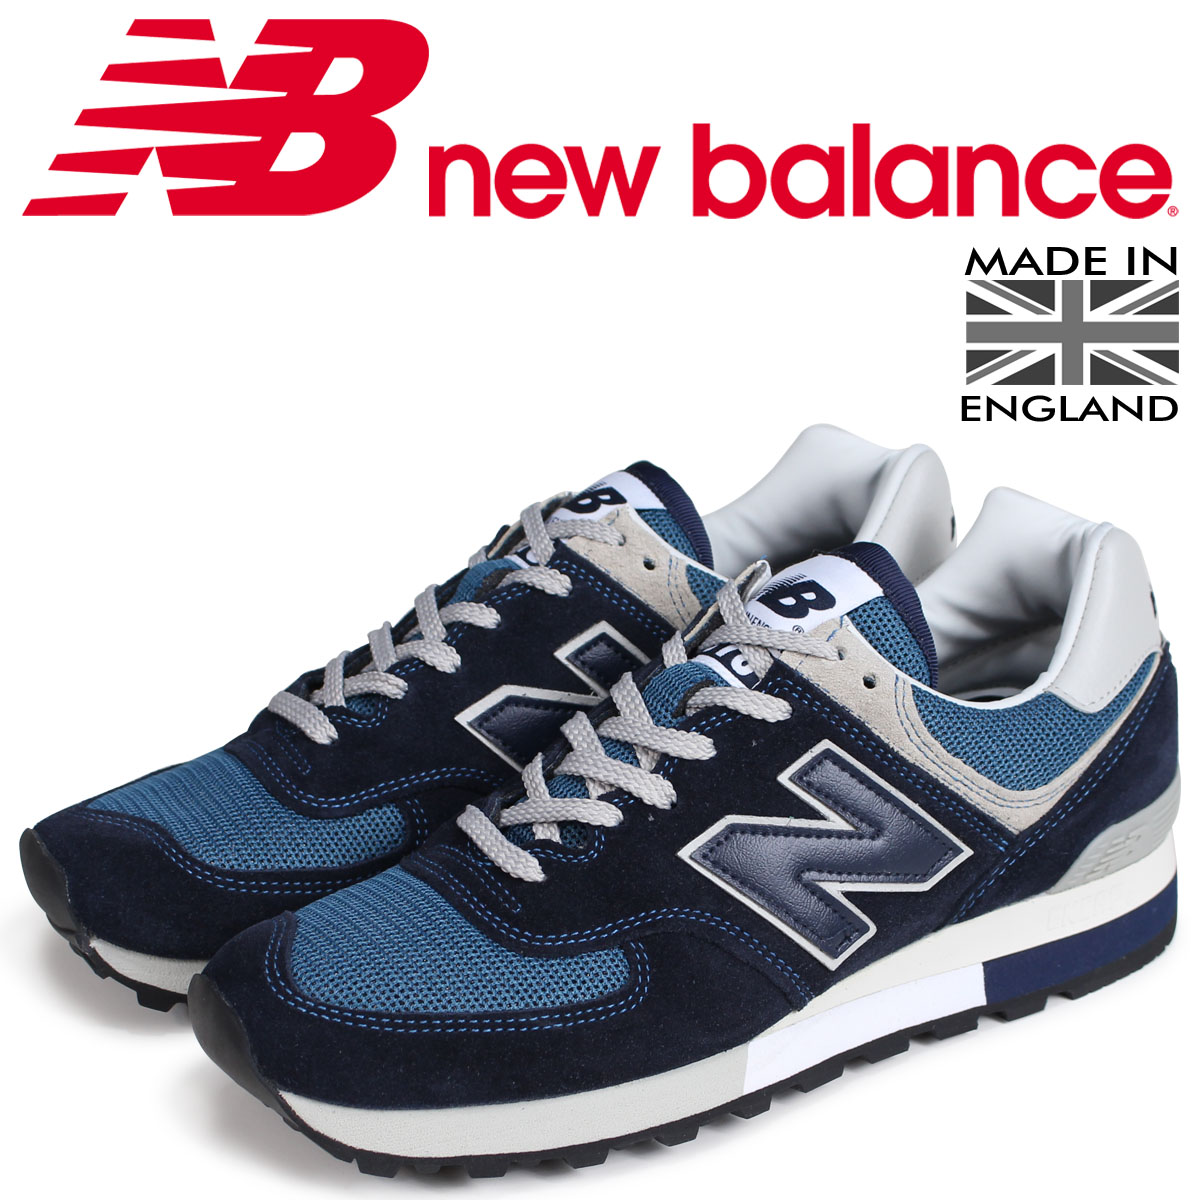 new balance 576 men's New Balance sneakers OM576OGN D Wise MADE IN UK navy  [load planned Shinnyu load in reservation product 7/6 containing]